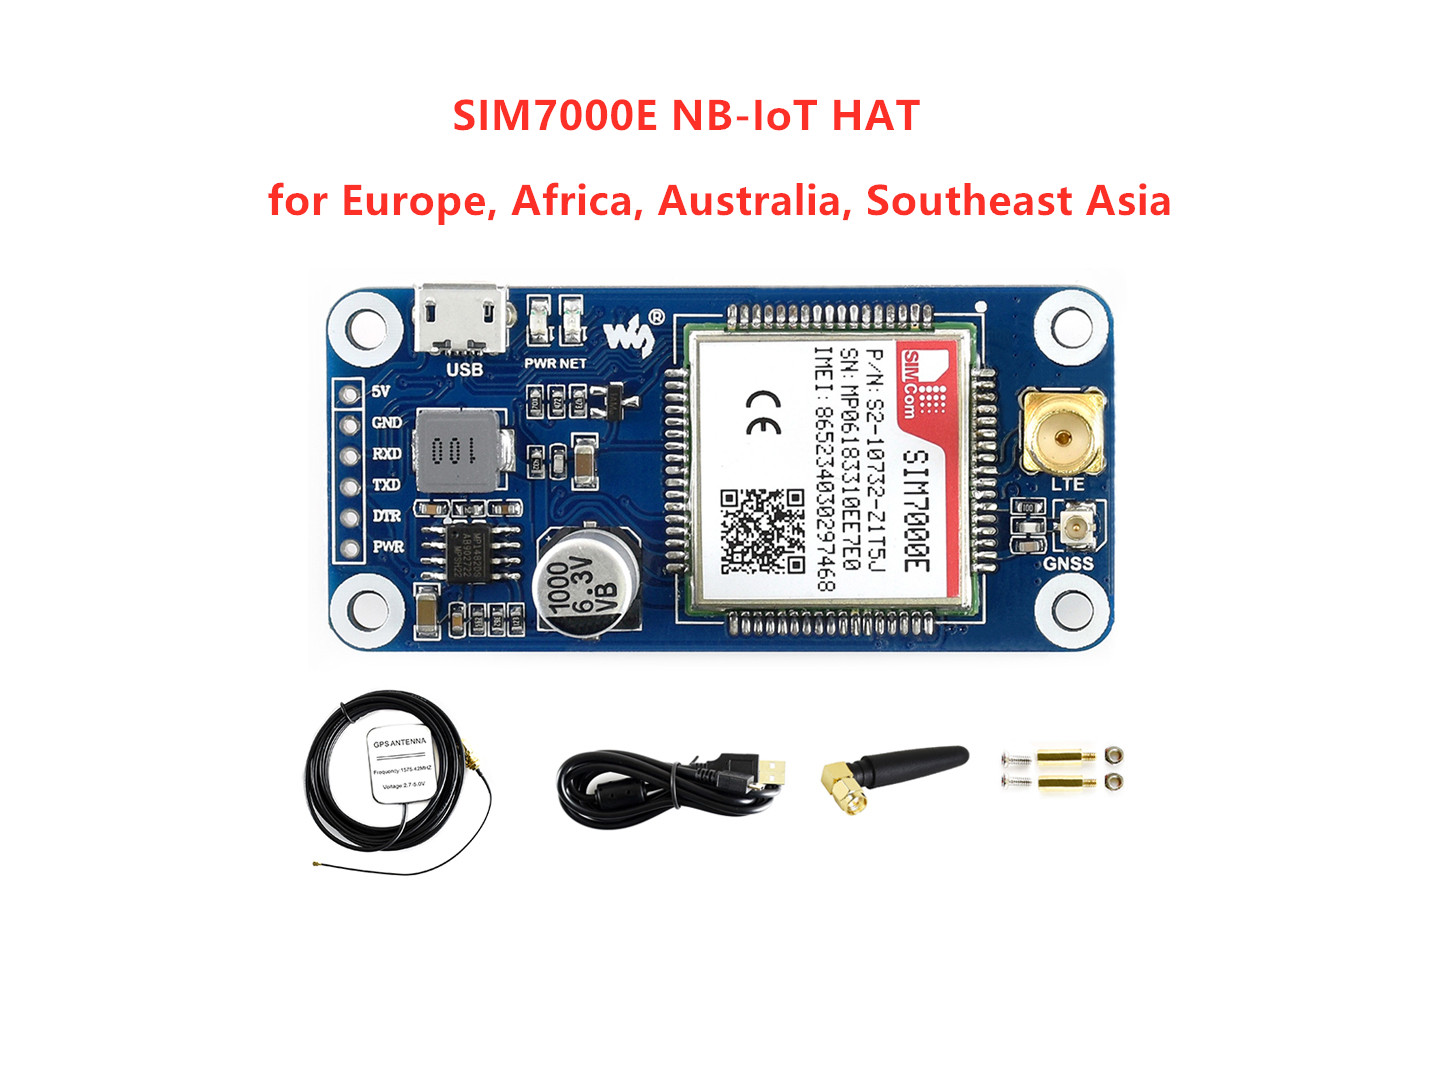 US $36 95 12% OFF|Waveshare NB IoT/eMTC/EDGE/GPRS/GNSS HAT for RPi  Zero/Zero W/Zero WH/2B/3B/3B+, Based on SIM7000E,Supports  TCP,UDP,PPP,HTTP,Mail-in